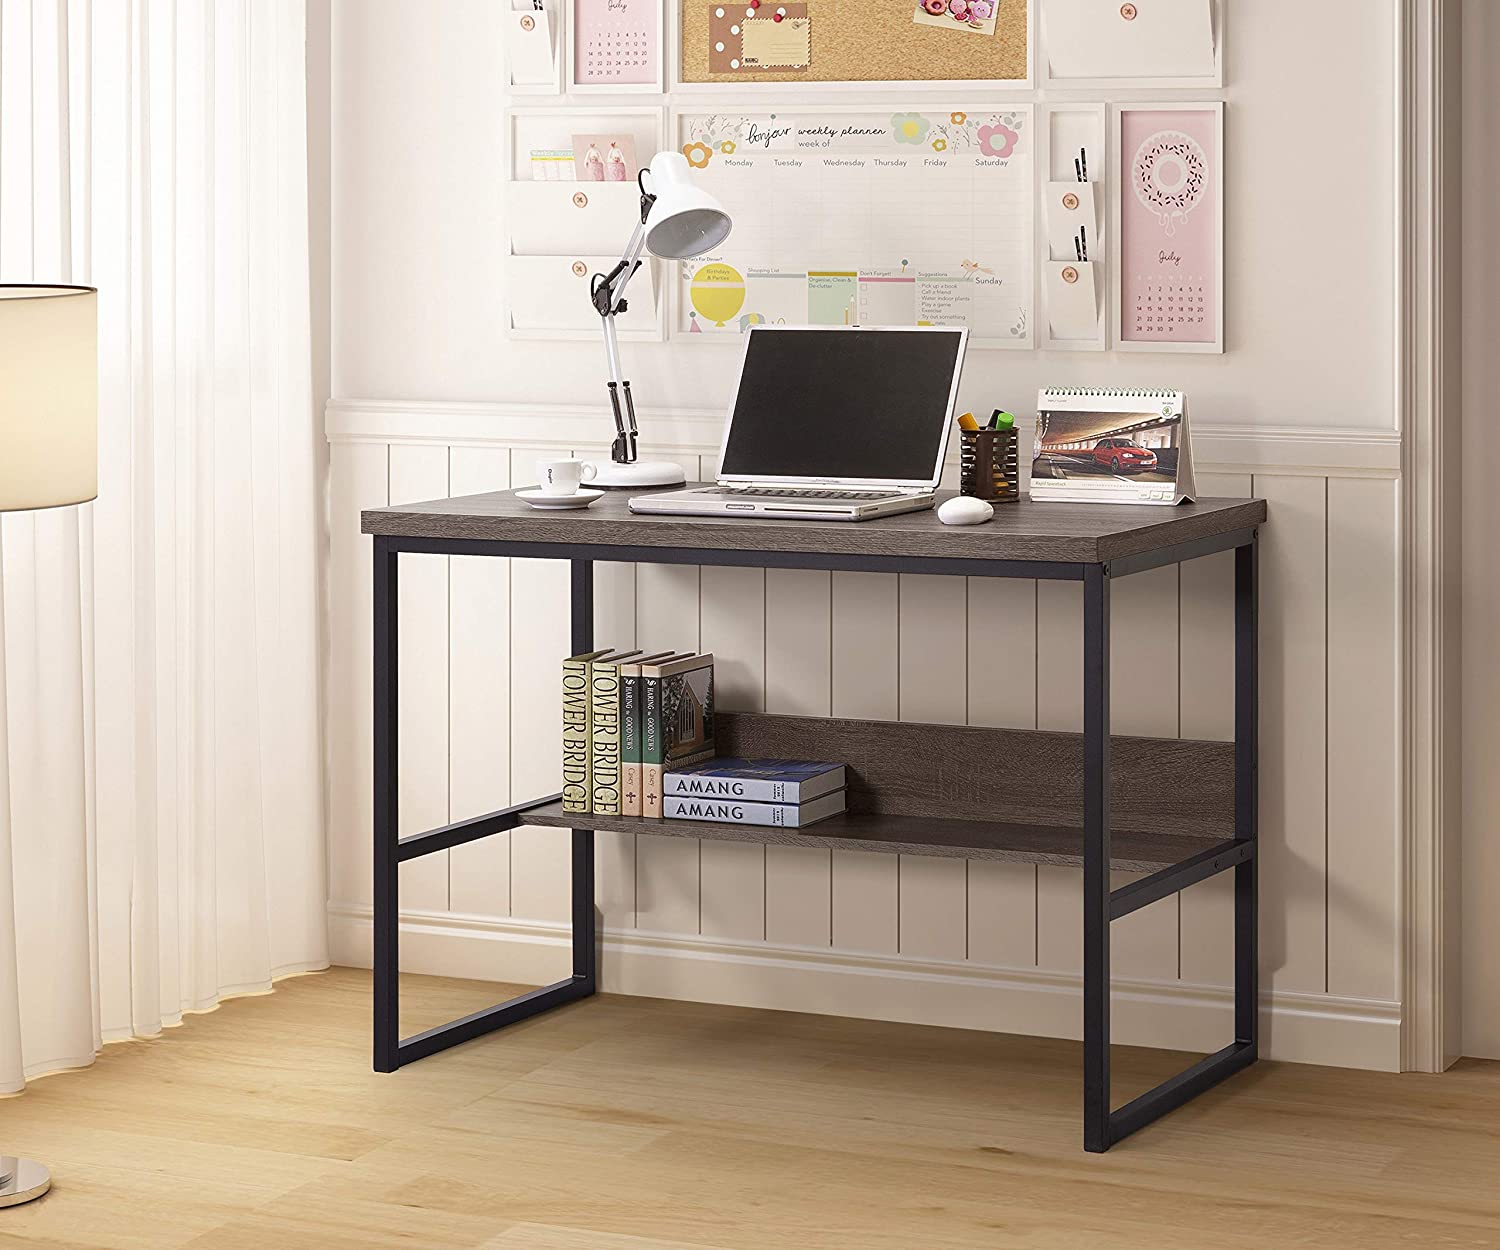 Weathered Grey Finish Large Computer Desk with Bookshelf, Office Desk, Writing Desk, Wood and Metal Frame, Study Table Workstation for Home Office Furniture, Industrial Style